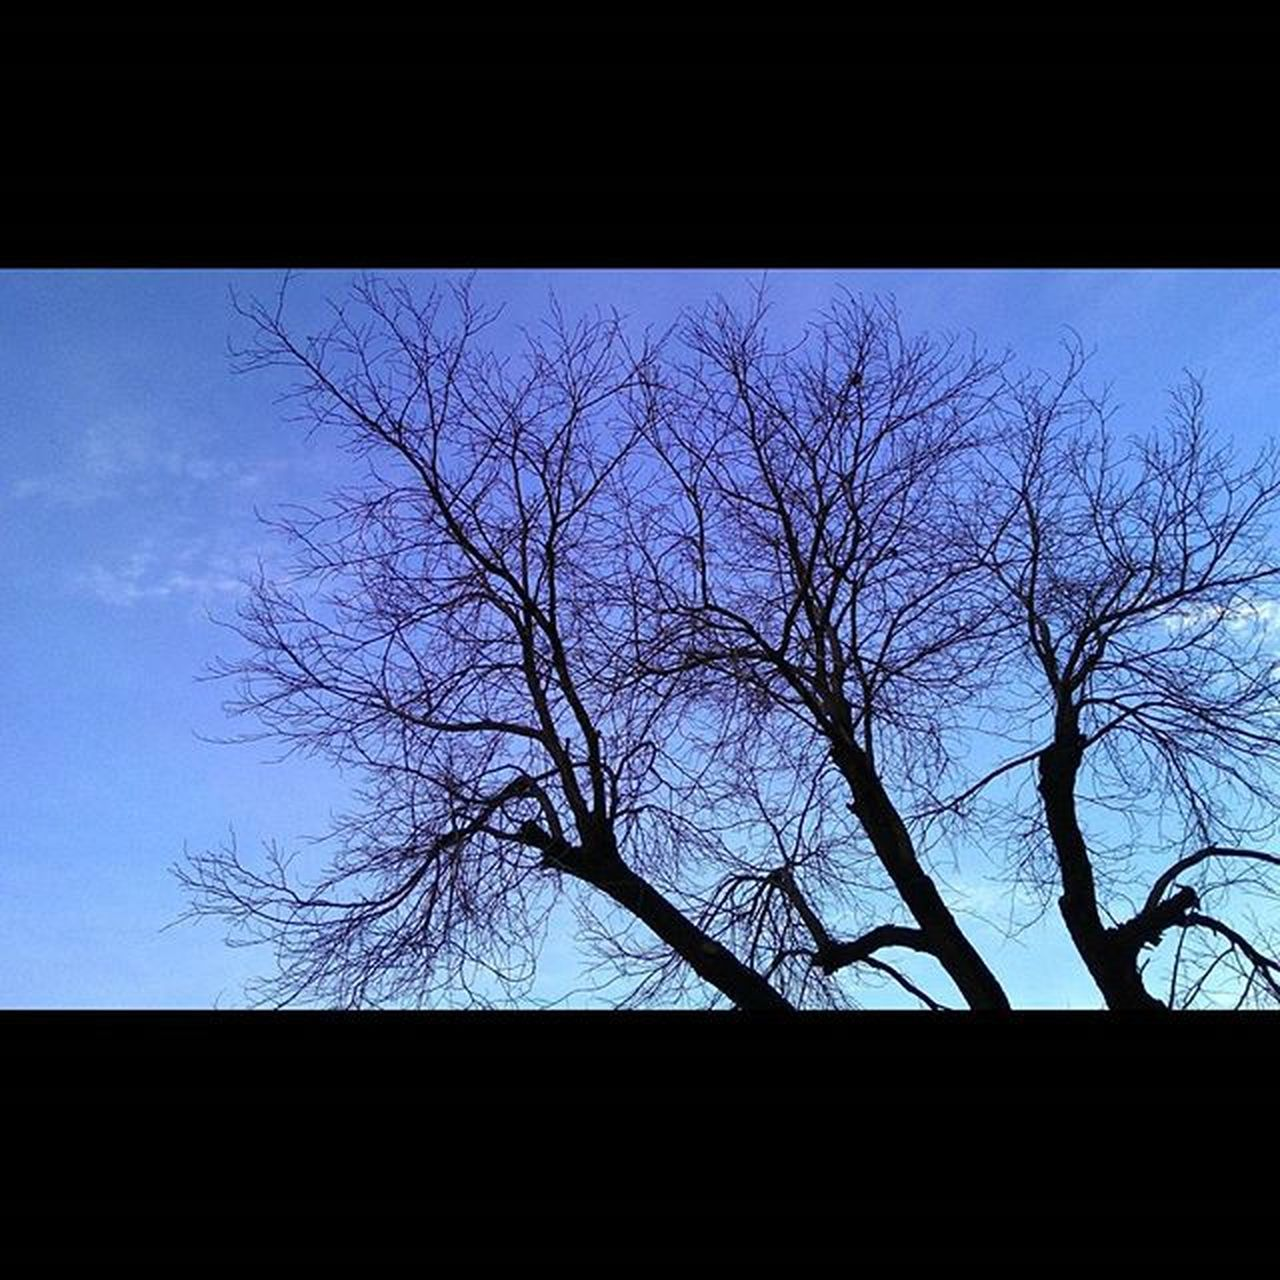 bare tree, silhouette, tree, branch, no people, outdoors, tranquility, nature, beauty in nature, low angle view, day, clear sky, sky